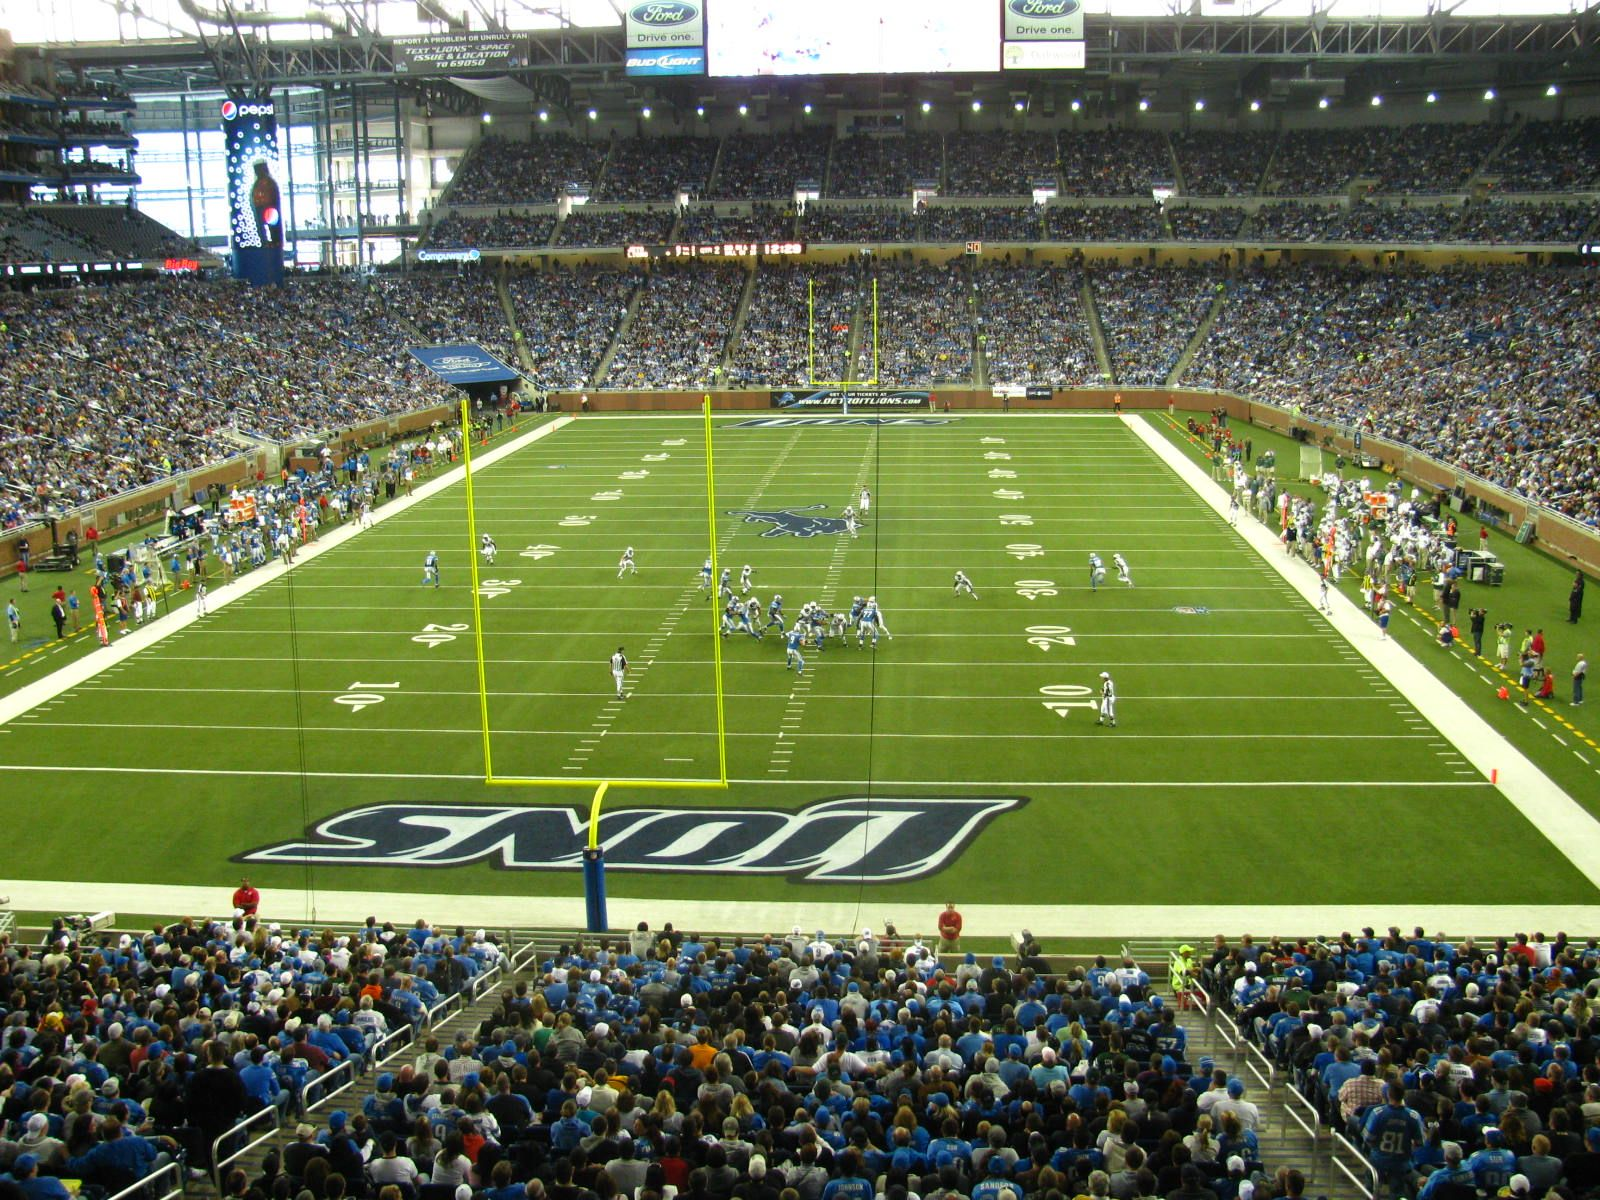 Detroit Lions and Ford Field | Michigan: Reasons I stay | Pinterest